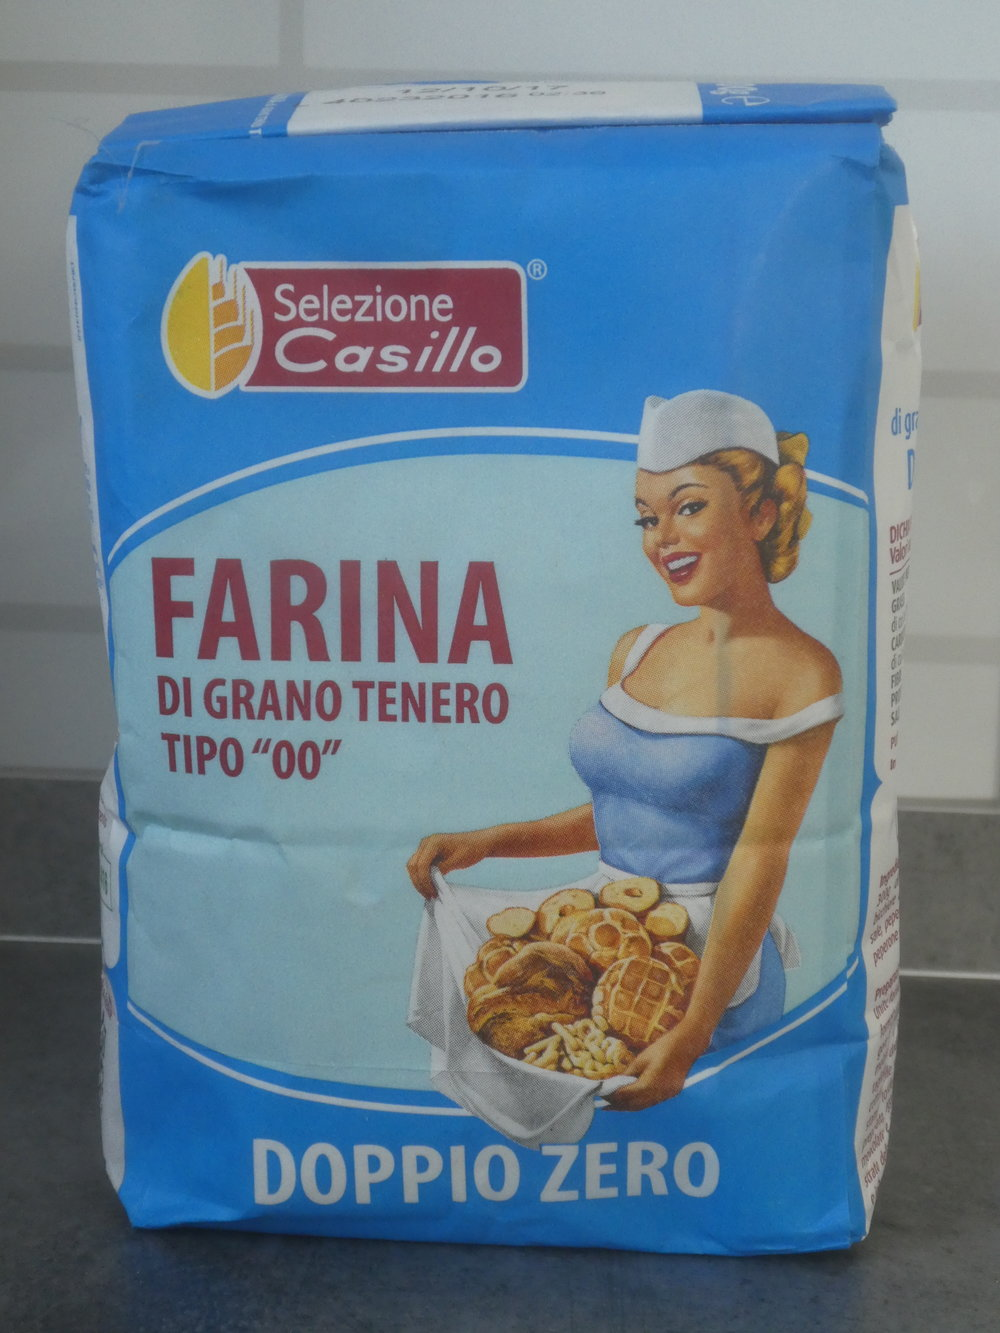 Obviously Italian wheat flour, Type Double Zero.